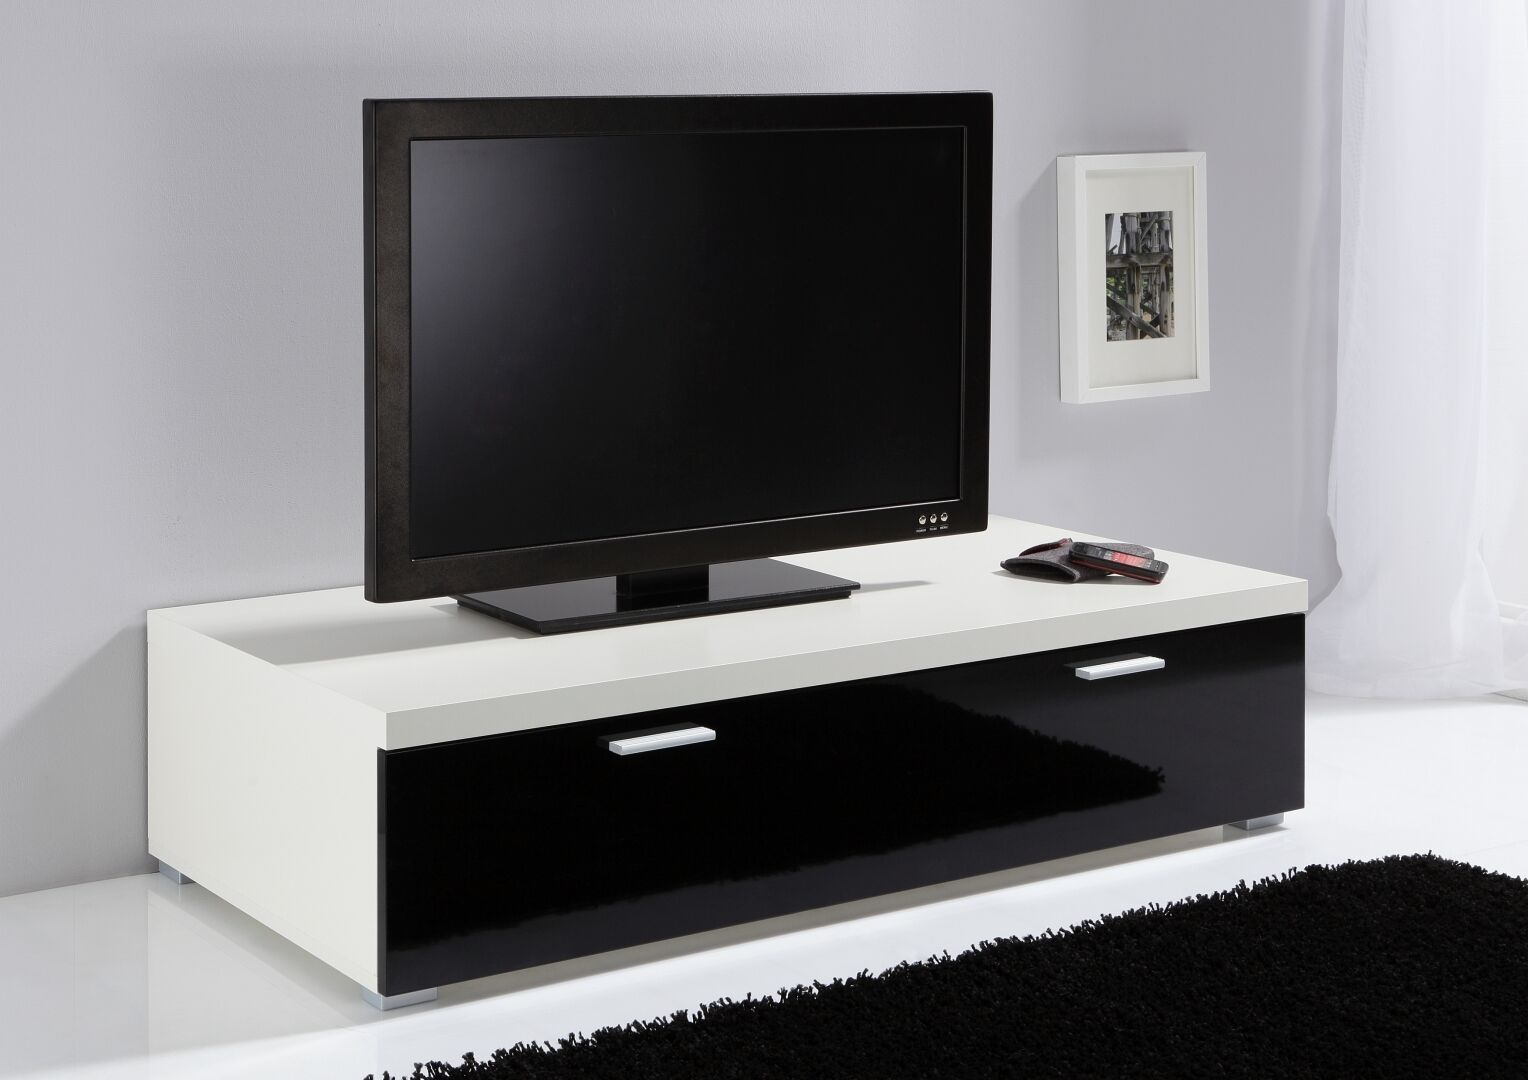 modanuvo low tv unit tv cabinet tv stand off white. Black Bedroom Furniture Sets. Home Design Ideas